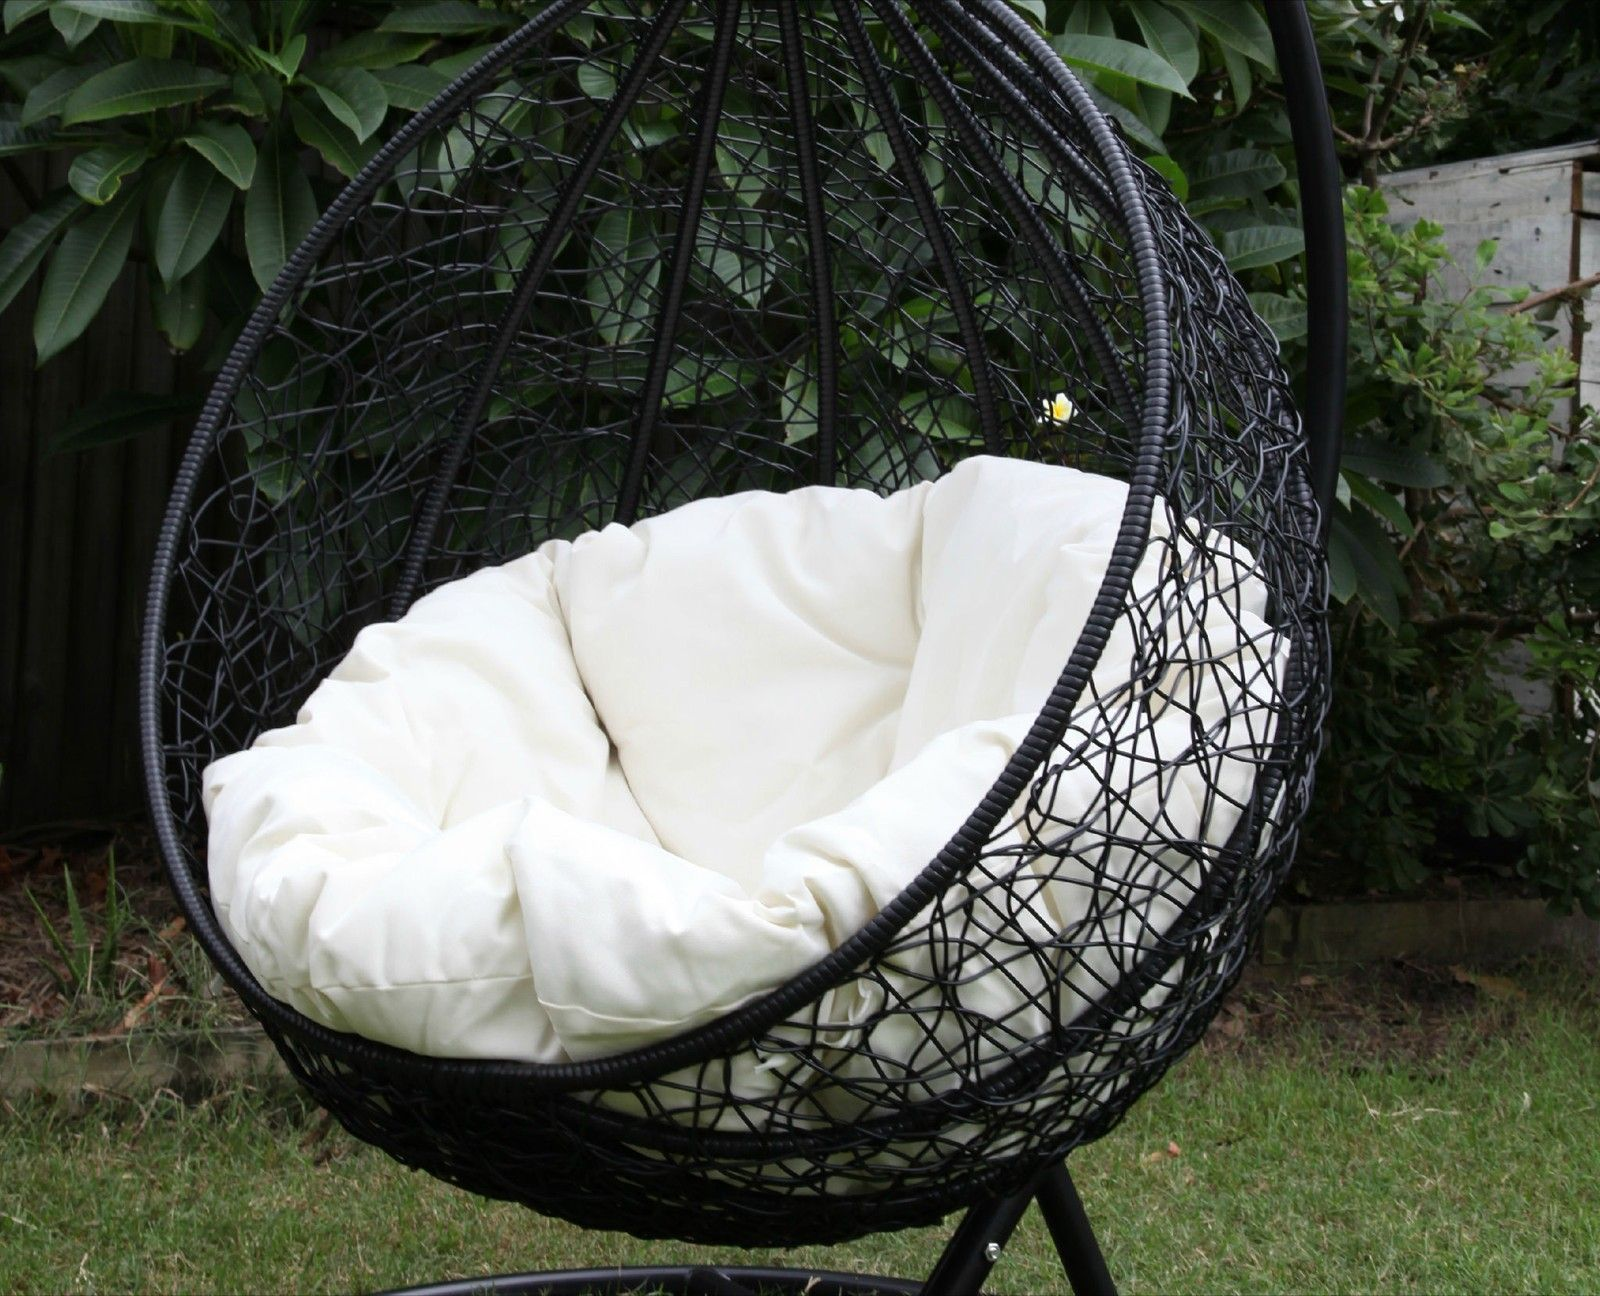 Basket chair ikea - Bar Chair Perfect Ikea Egg Chair Review Egg Chair Hanging Bubble Chair Under Comfy Outdoor Hanging